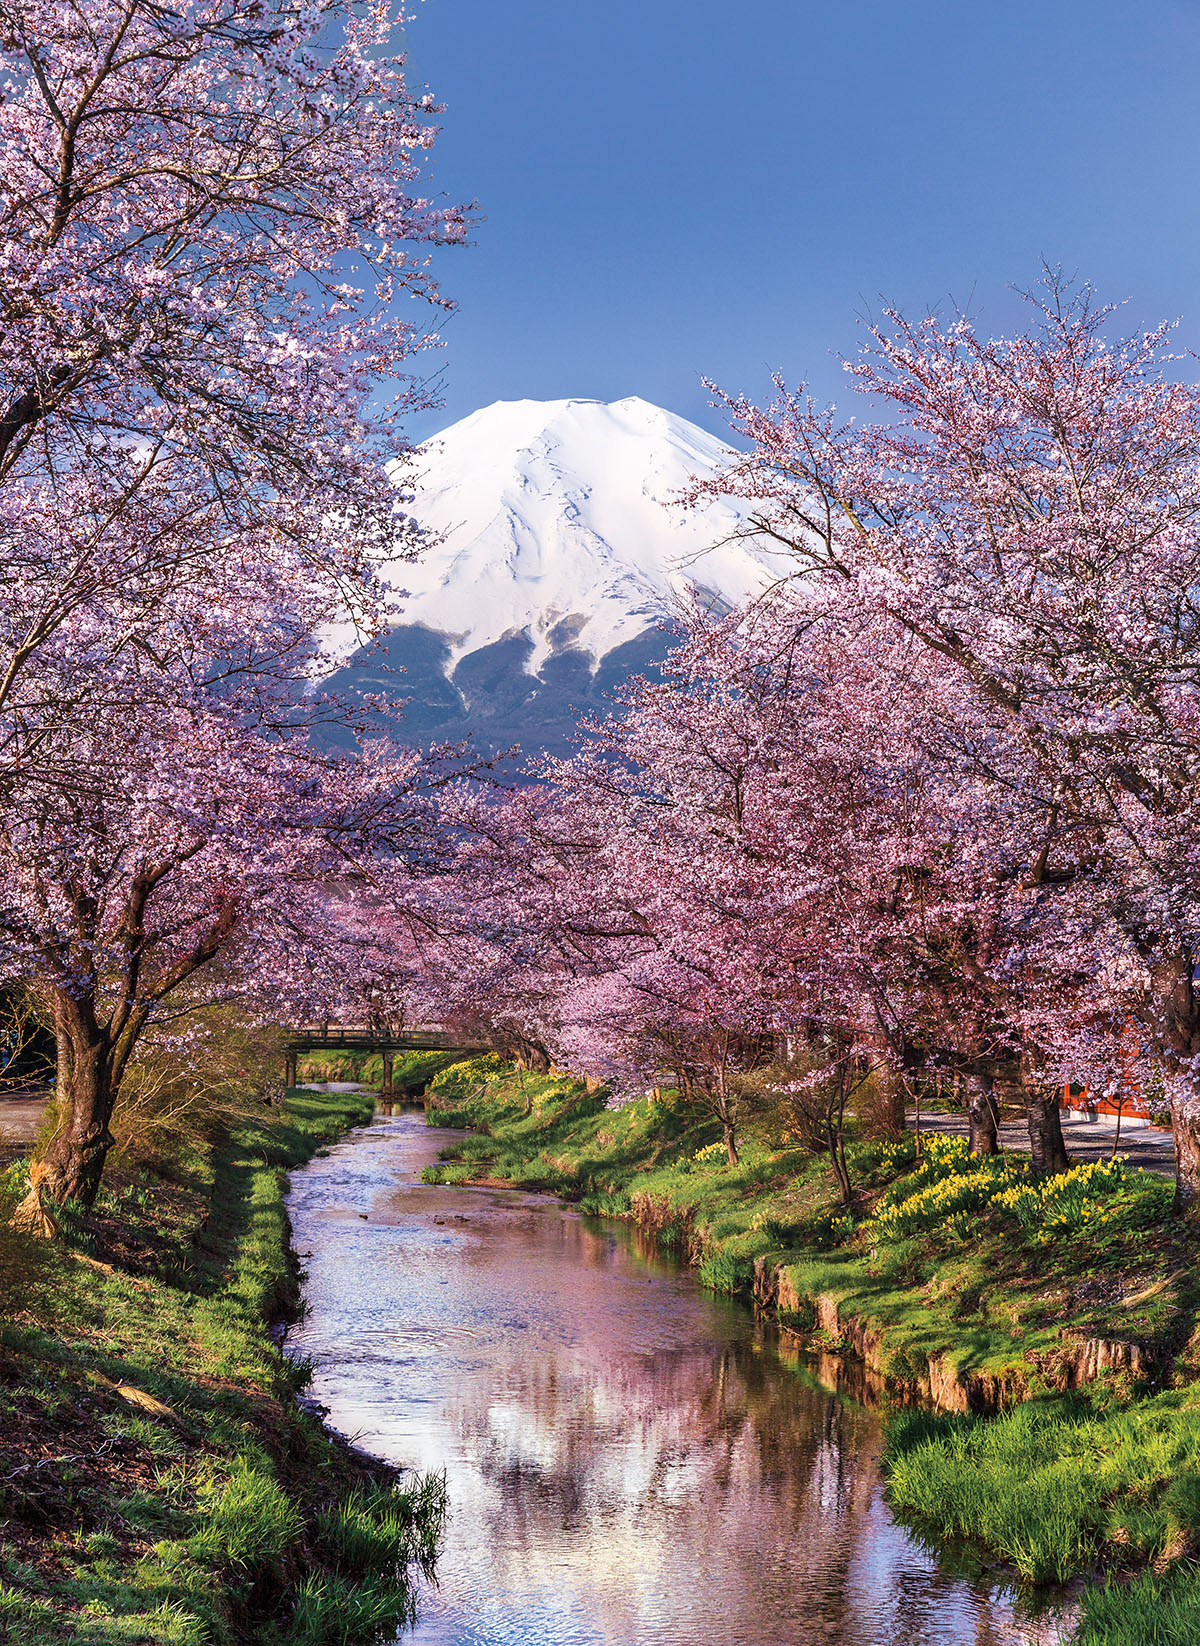 Fuji Mountain - Scratch and Dent Mountains Jigsaw Puzzle